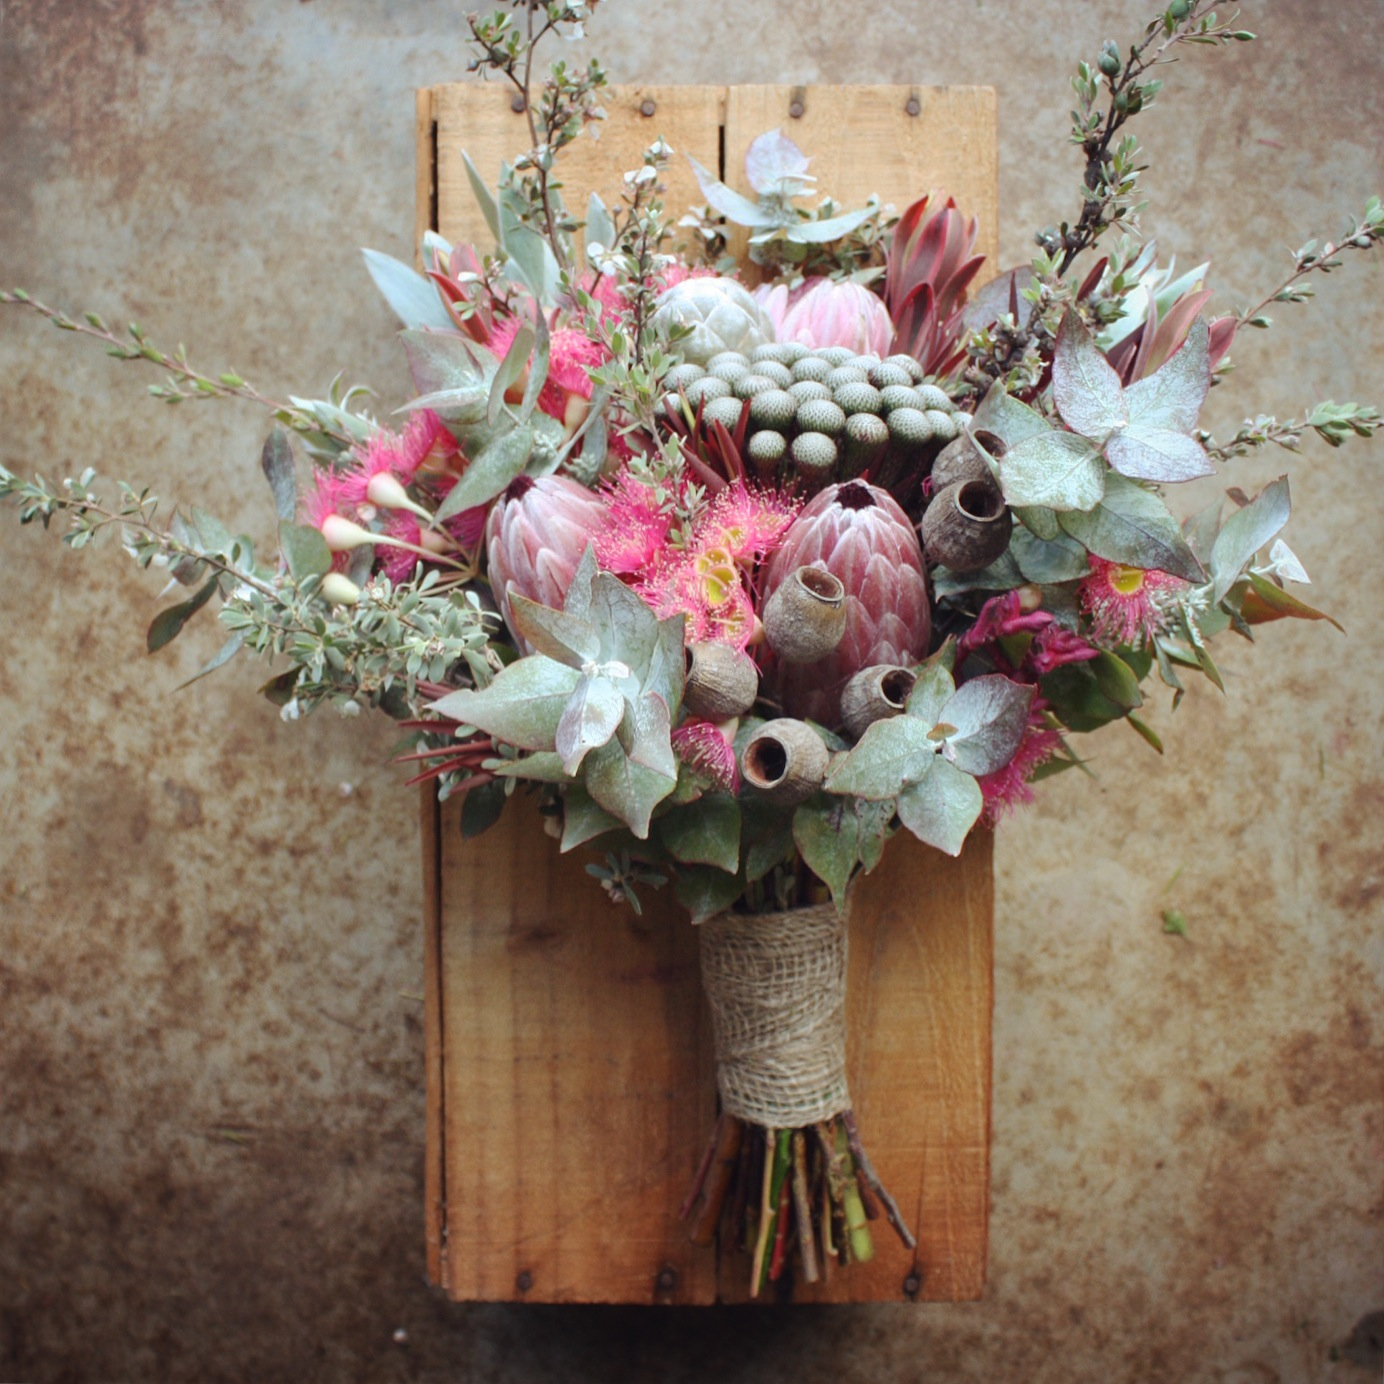 Wedding Flower Bouquets Ideas: Swallows Nest Farm: DIY Bush Wedding In March